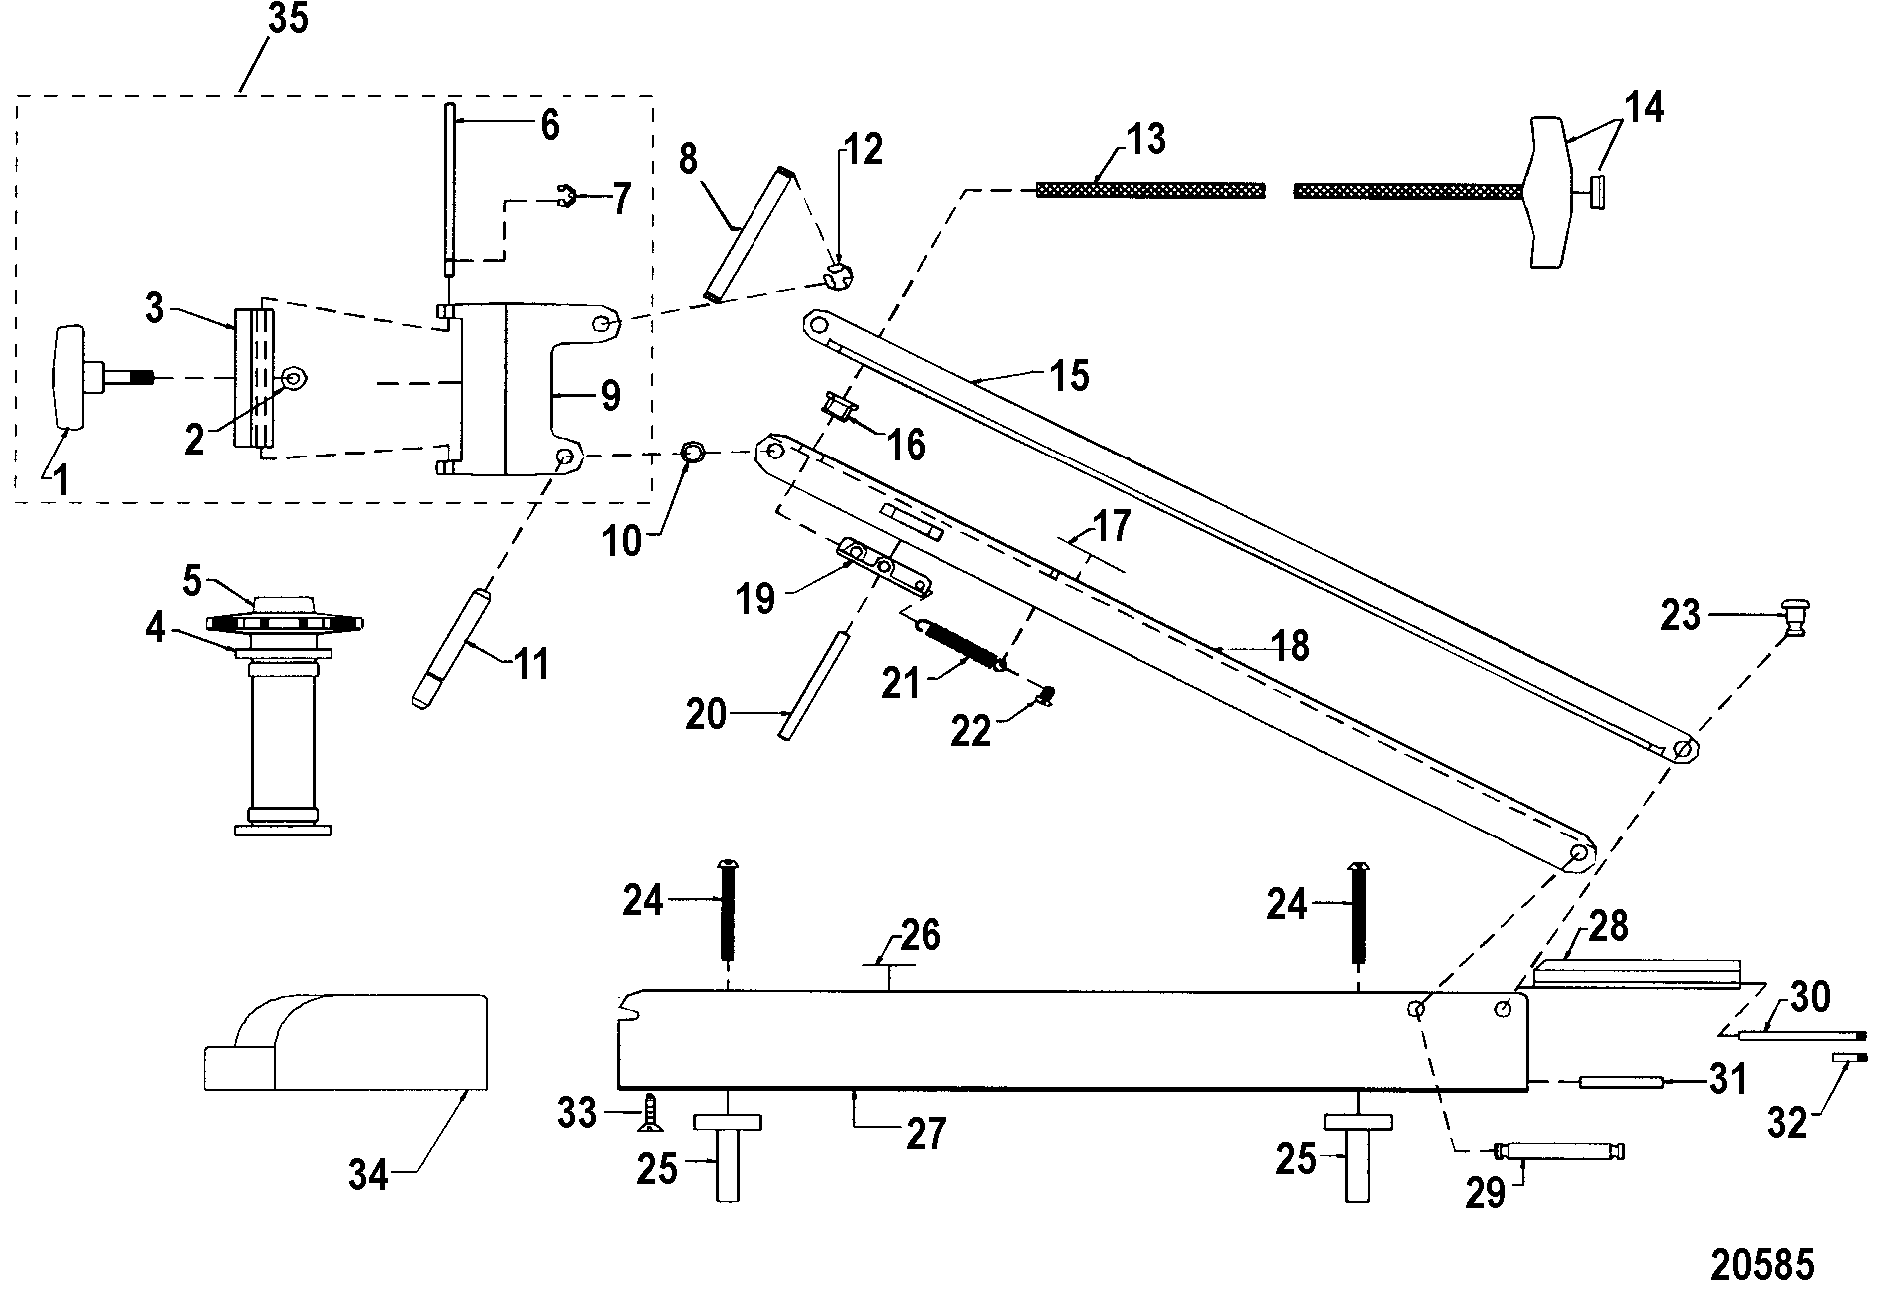 Motorguide Gator Mount Parts Diagram